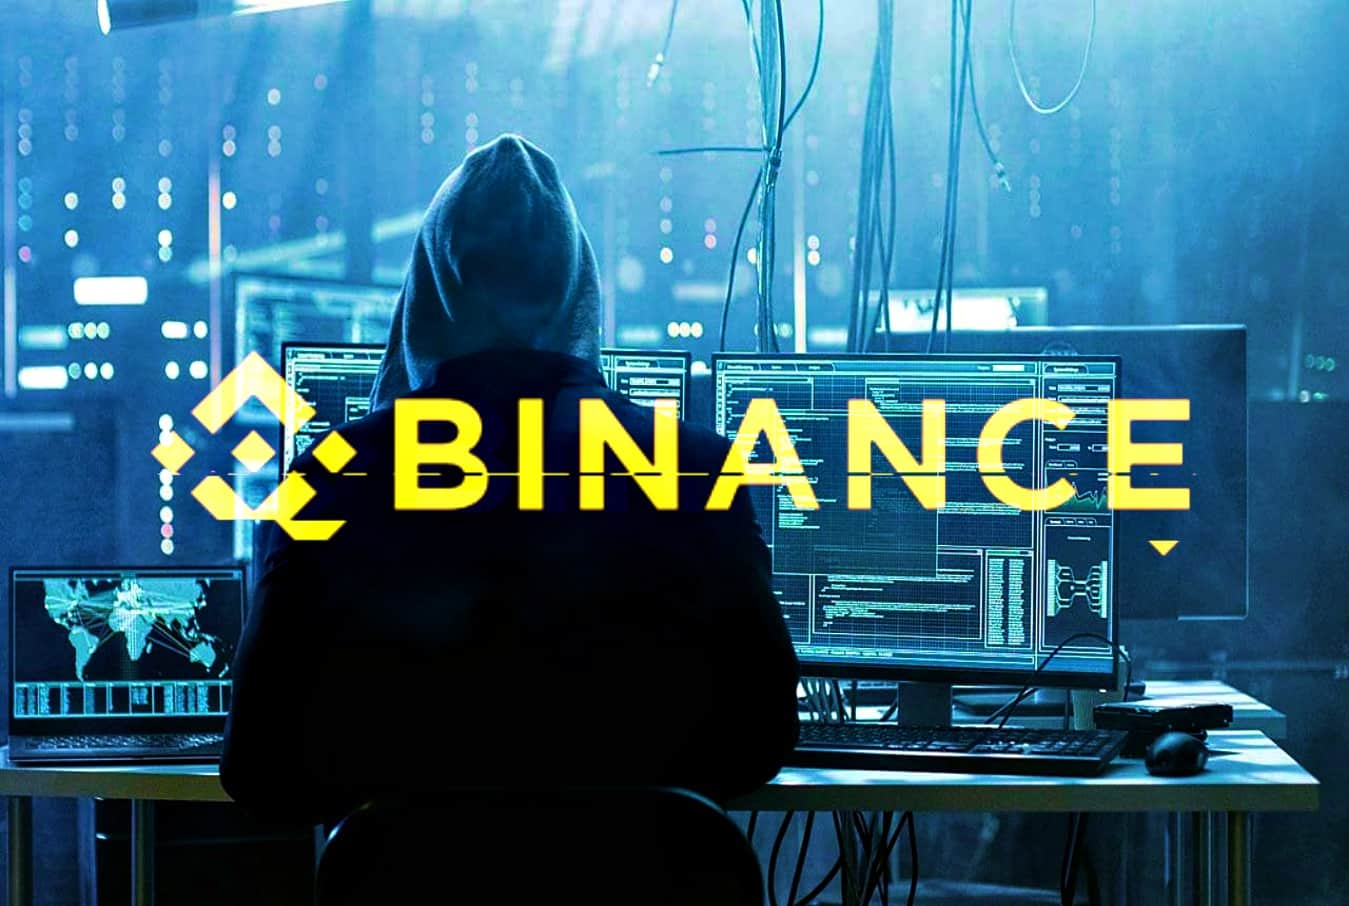 Binance exchange hacked: Bitcoin worth $40 7M stolen | Hackbusters